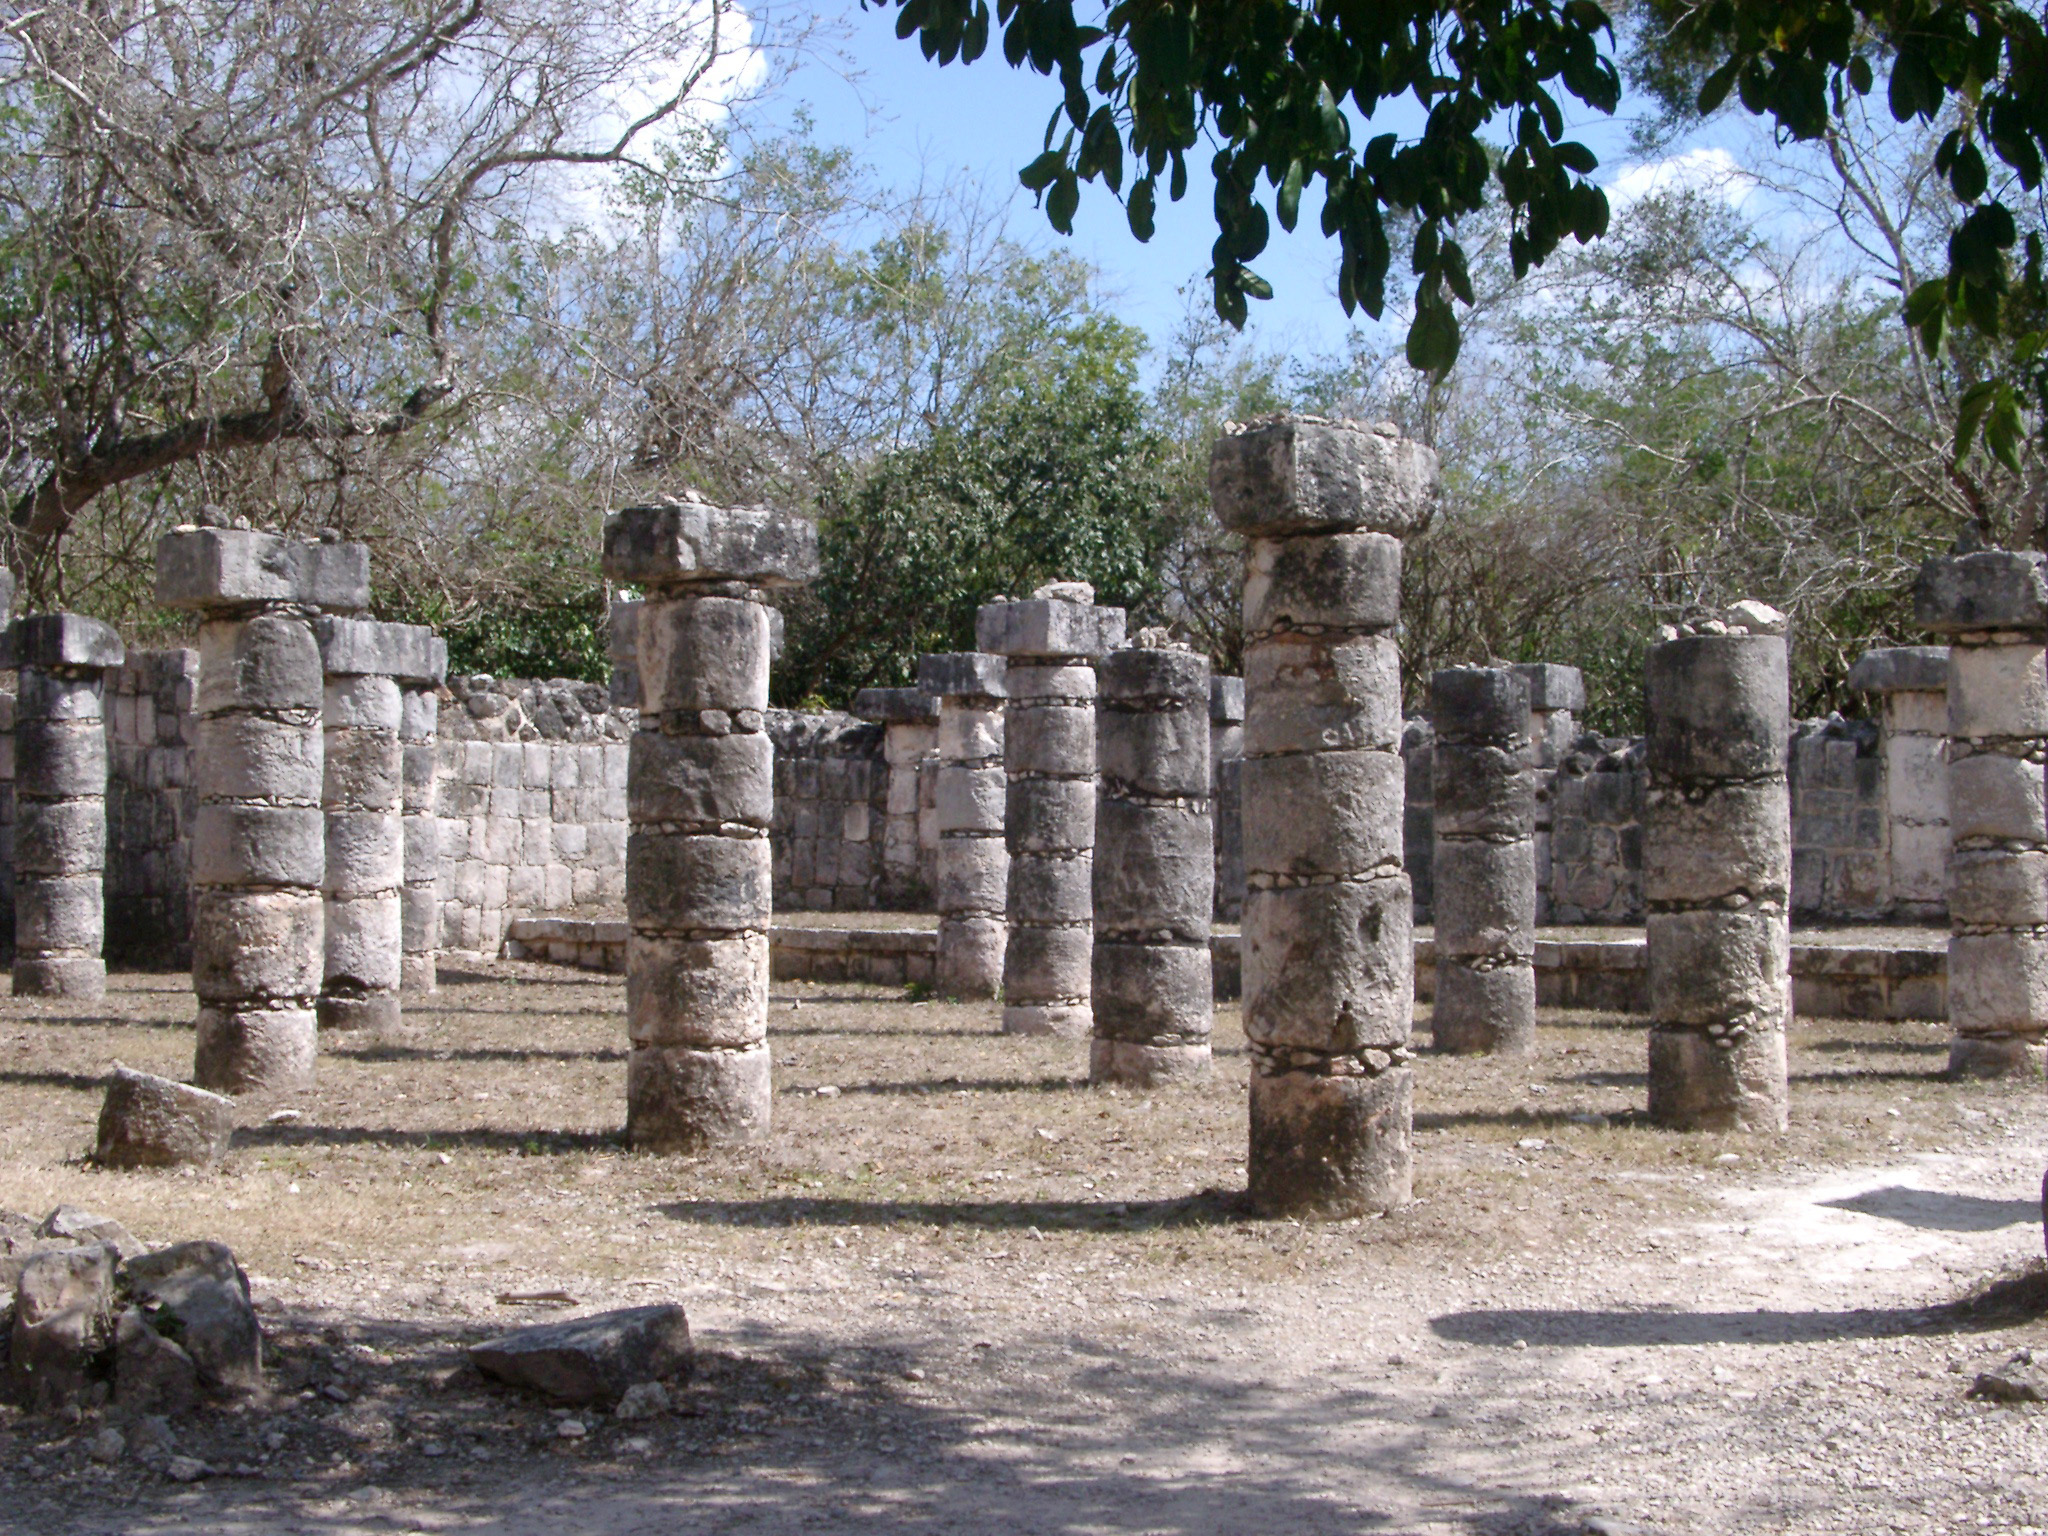 Ancient stone coloumns, remnants of a building in Chitzen Itza Mayan ruins, Yucatan Province, Mexico